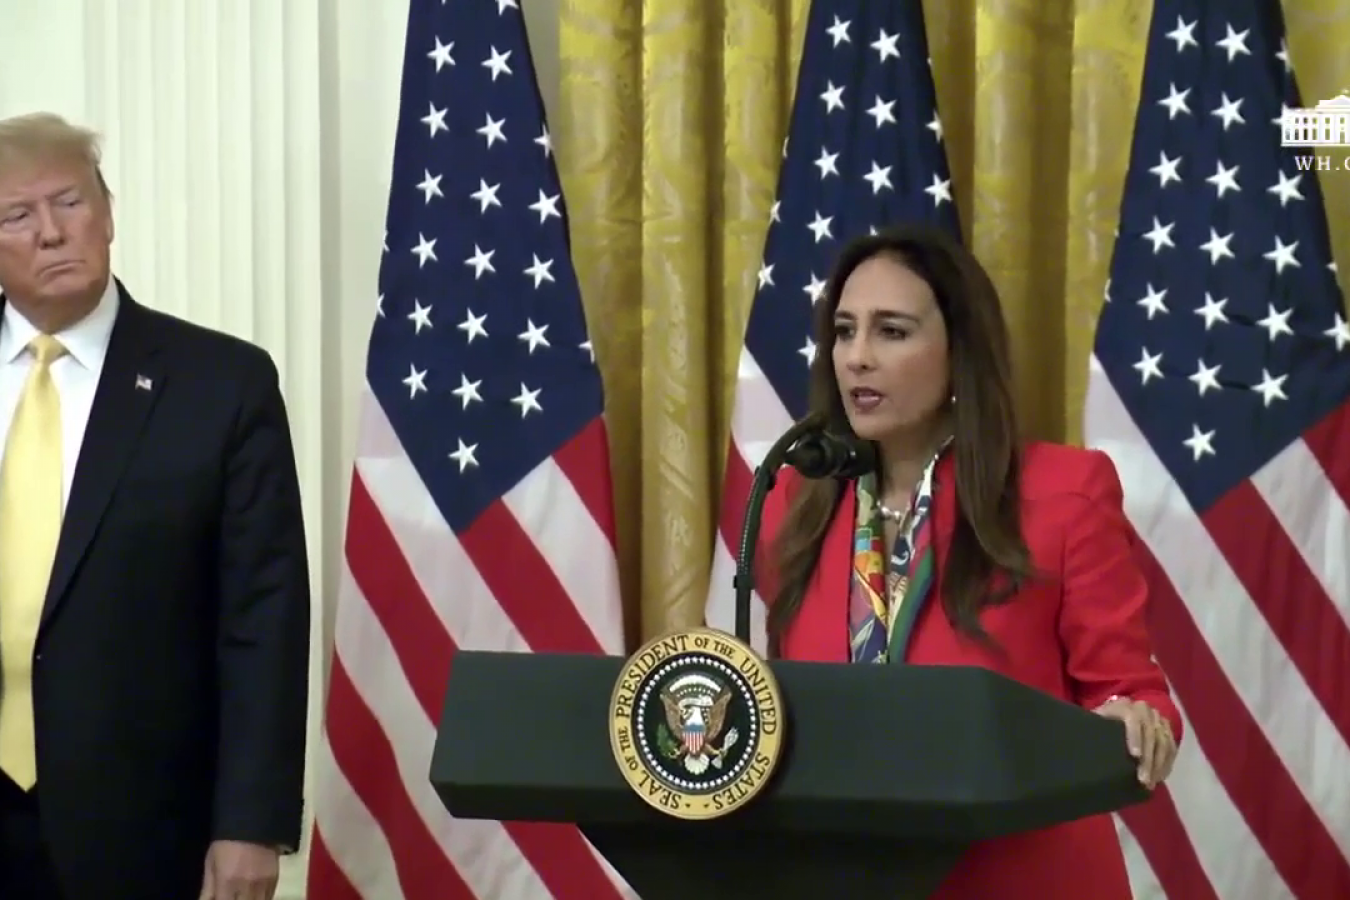 American lawyer and Republican party official Harmeet Dhillon speaks at the White House's Social Media Summit 11 July 2019